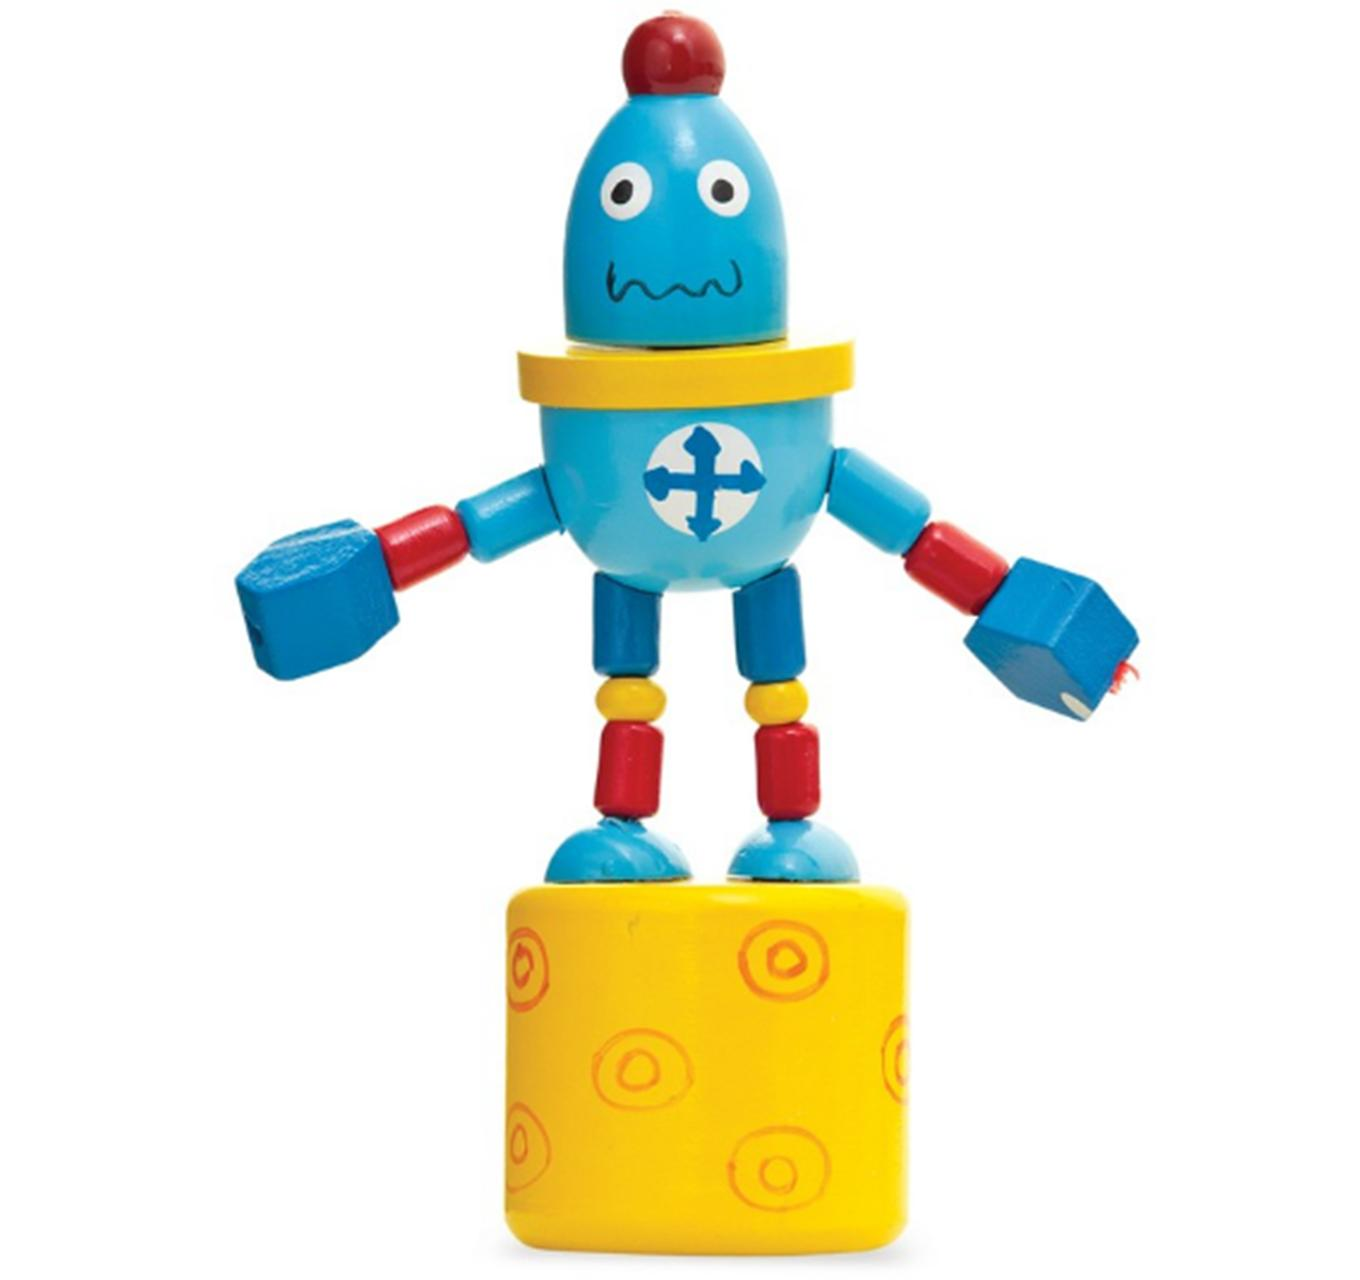 Push Up Robots 11.5cm - Each